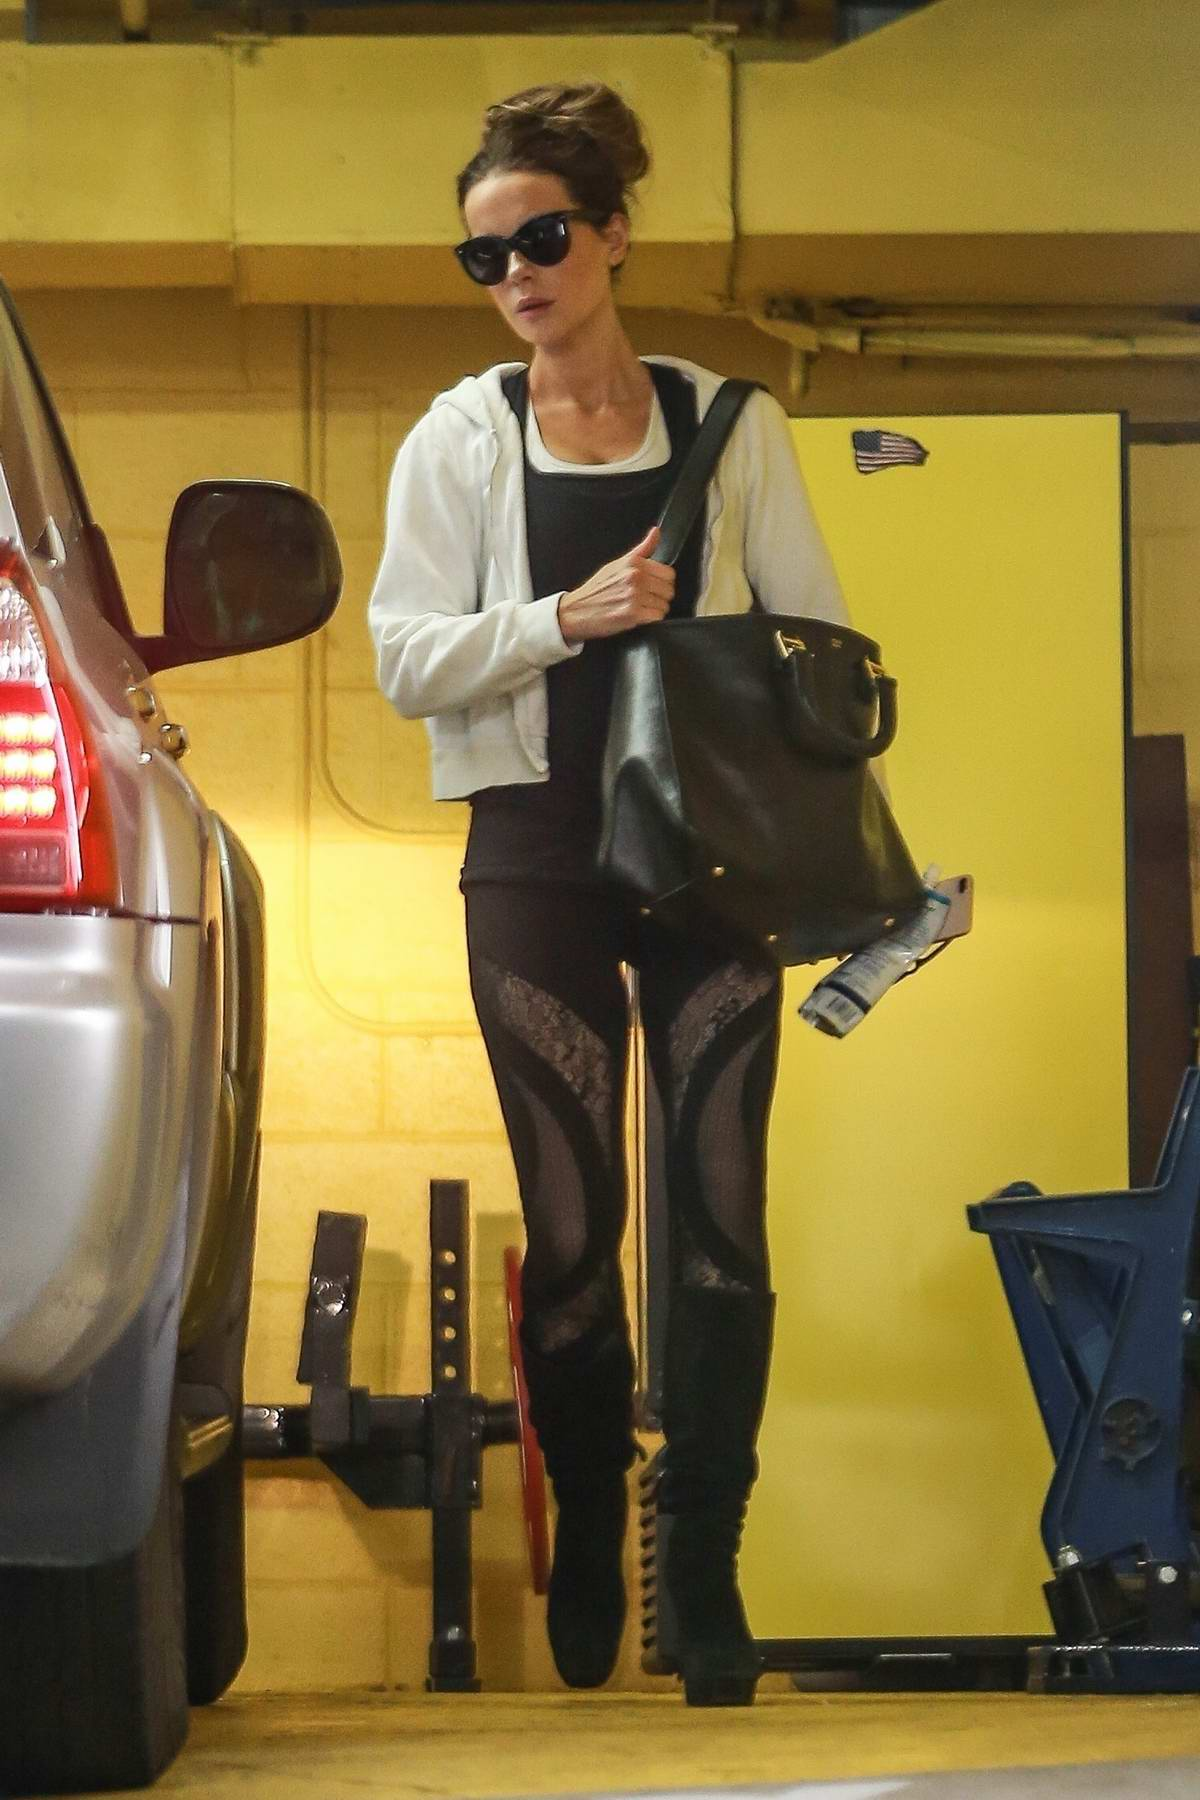 Kate Beckinsale seen leaving the gym after an afternoon workout session in Beverly Hills, California